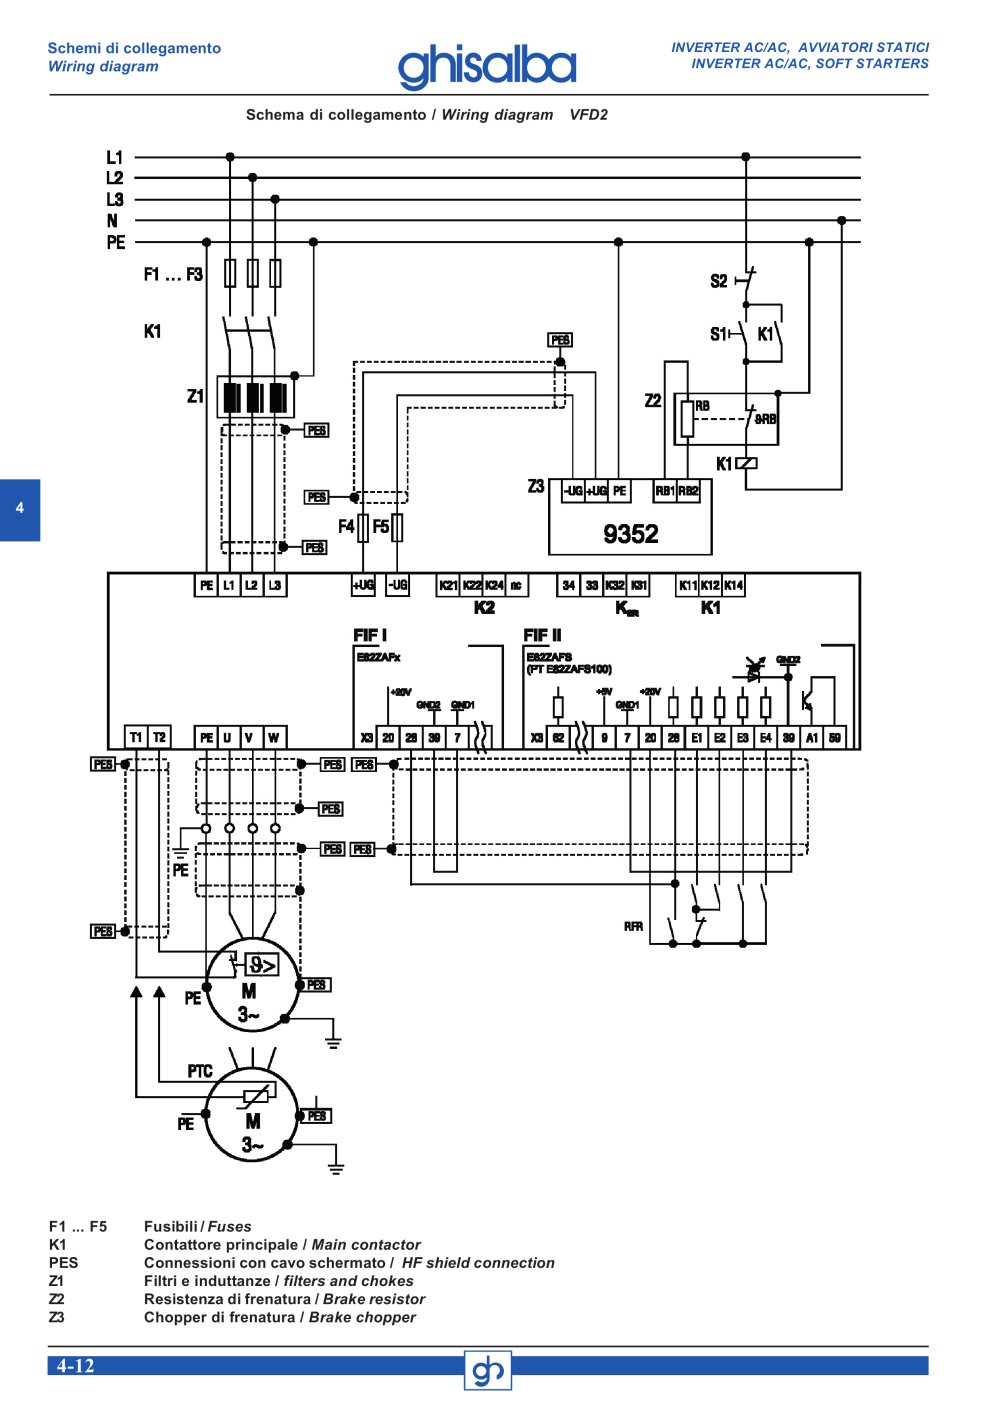 Soft starter wiring diagram pdf wiring library soft starter wiring diagram blueraritan info rh blueraritan info motor starter wiring diagram abb soft starter asfbconference2016 Choice Image